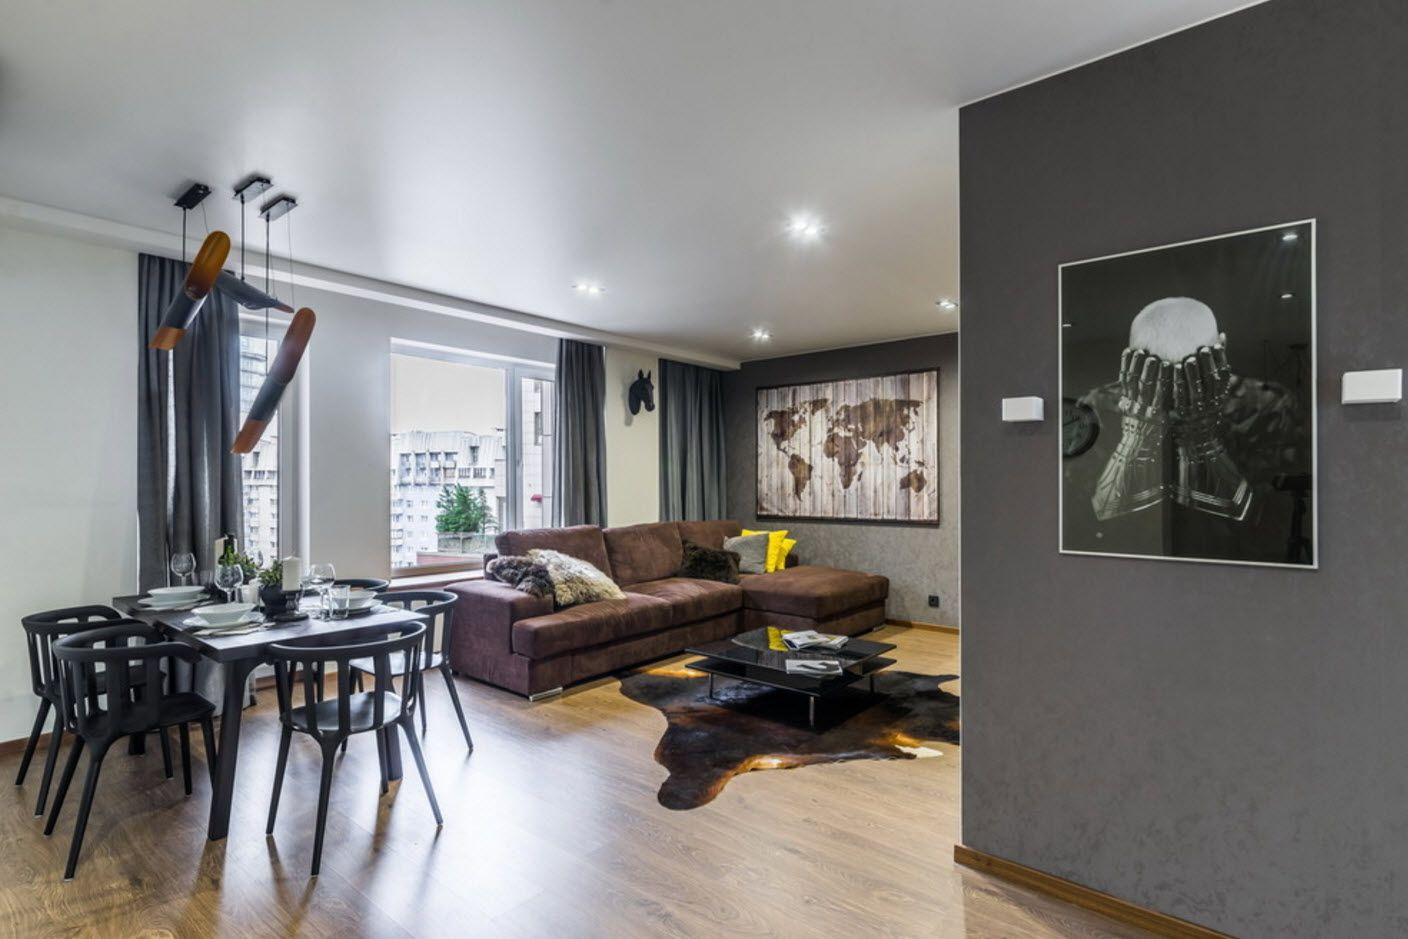 Gray interior with parquet and built-in ceiling lighting